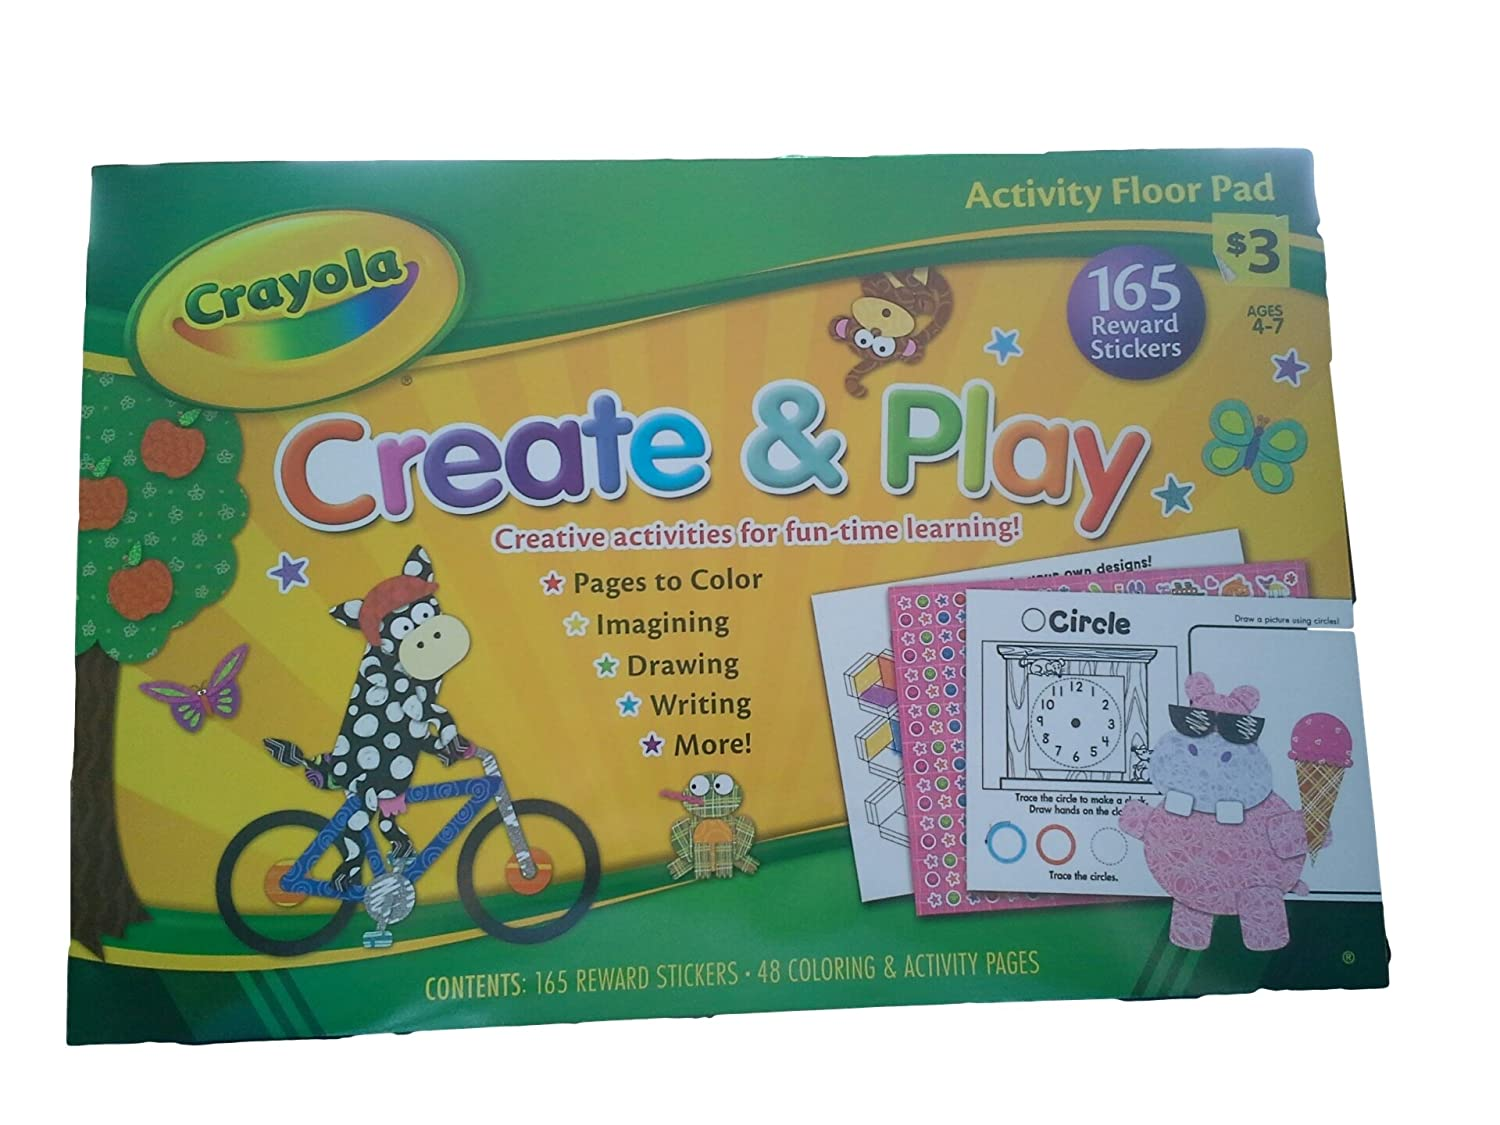 Amazon.com: Crayola Activity Floor Pads, Create & Play and Puzzles ...